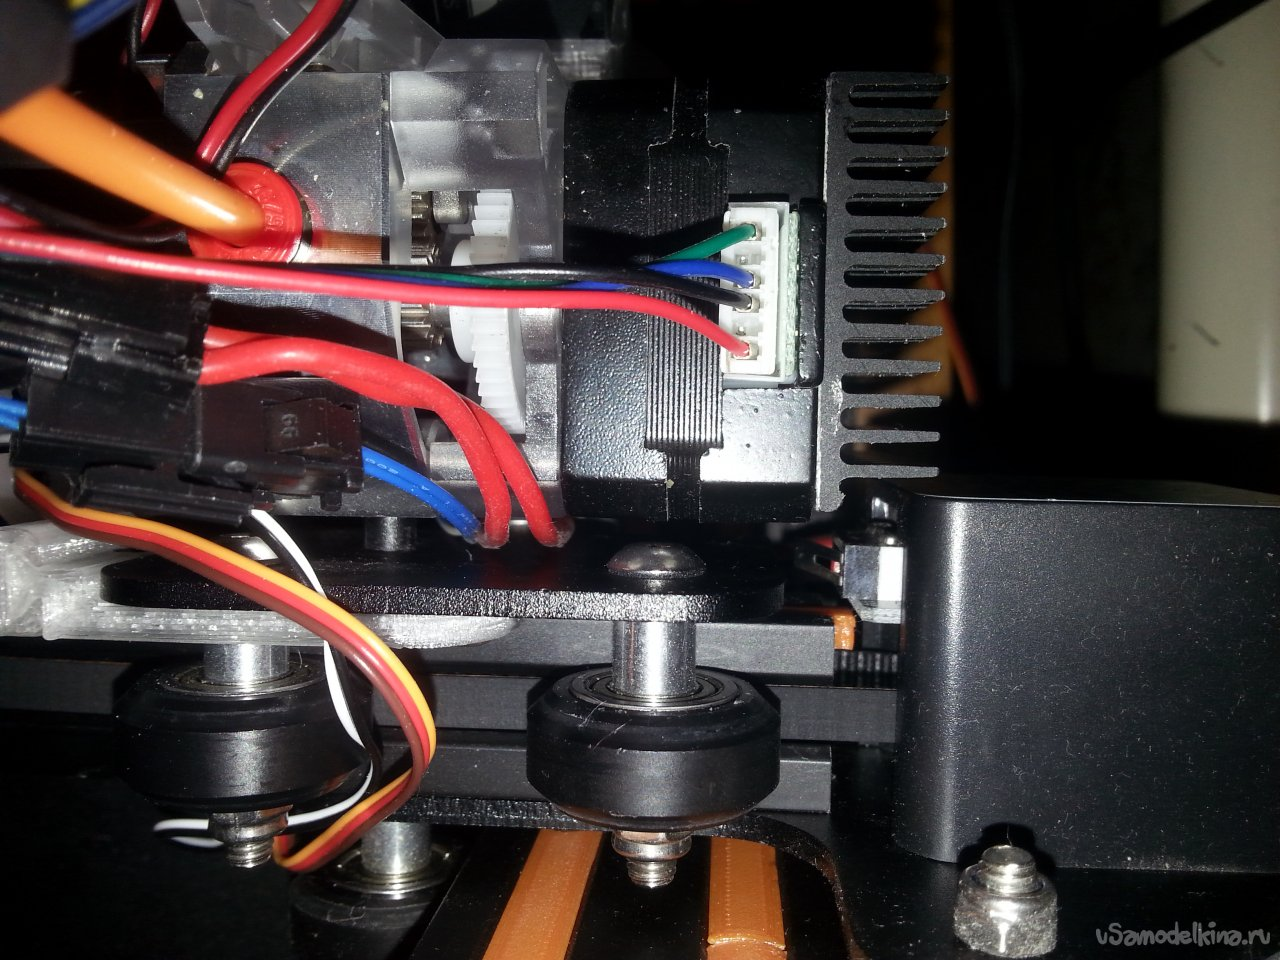 We attach the table level sensor (BLTouch) to the 3D printer carriage, tuning Ender3